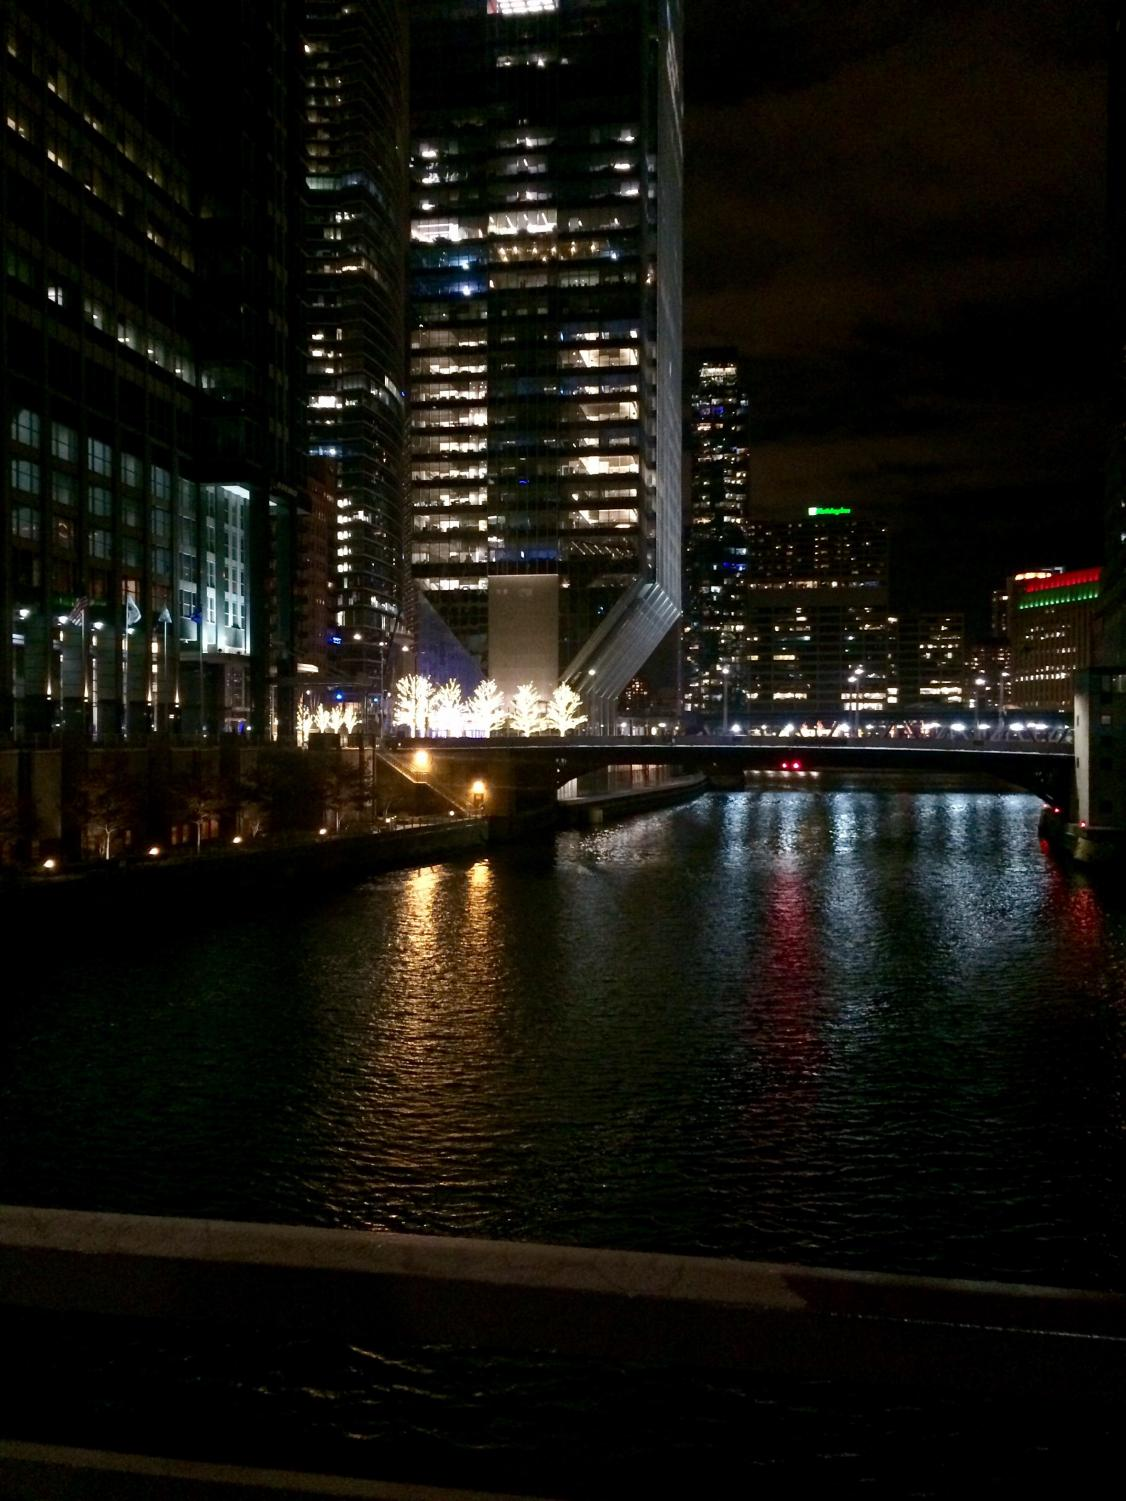 A night view overlooking the Chicago River